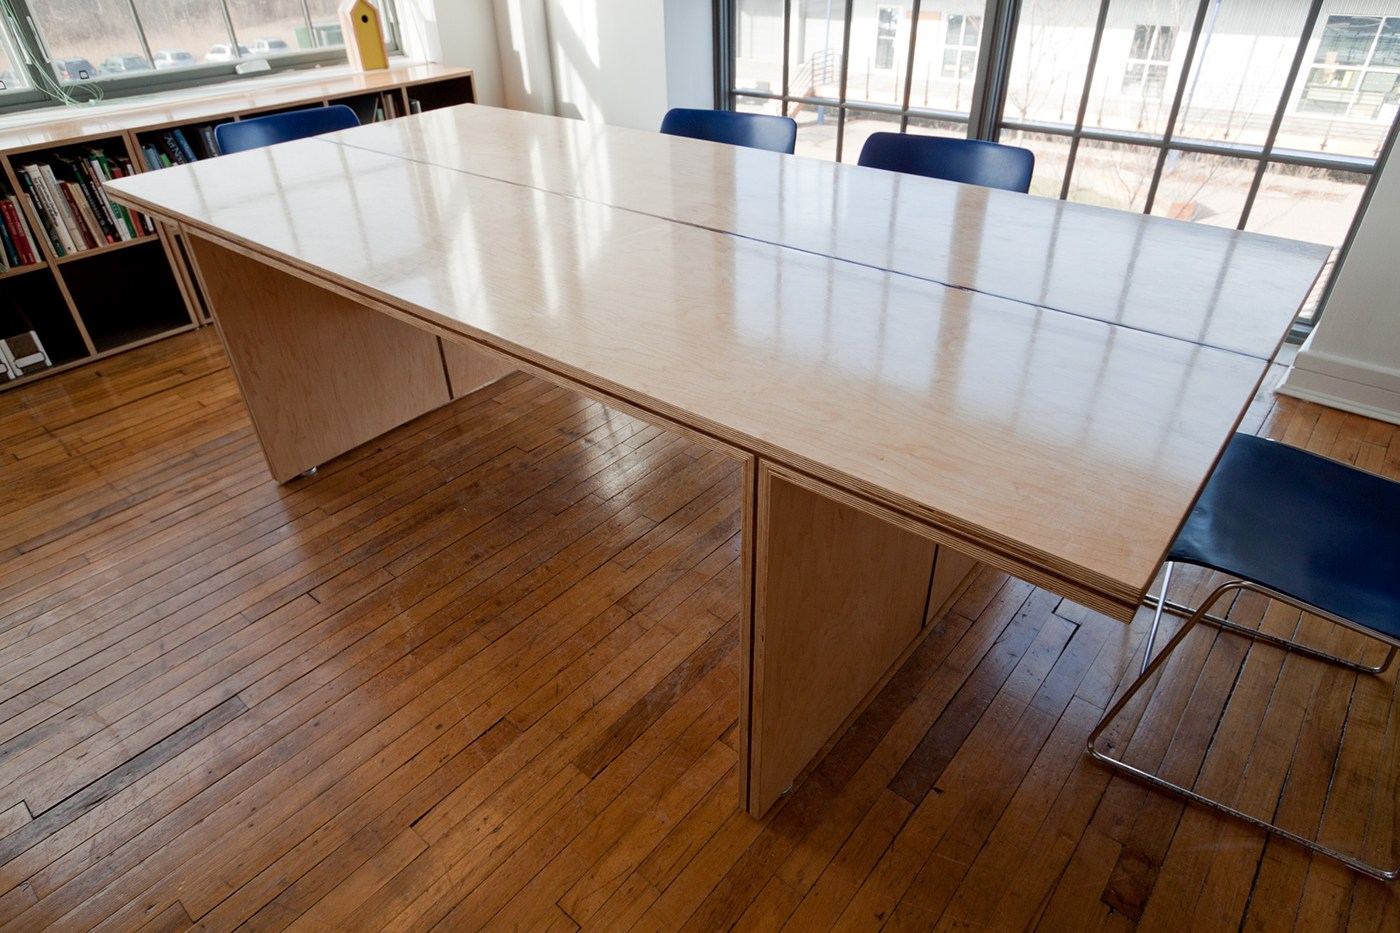 Conference Table Amp Shelves Smith Buckley Architects On